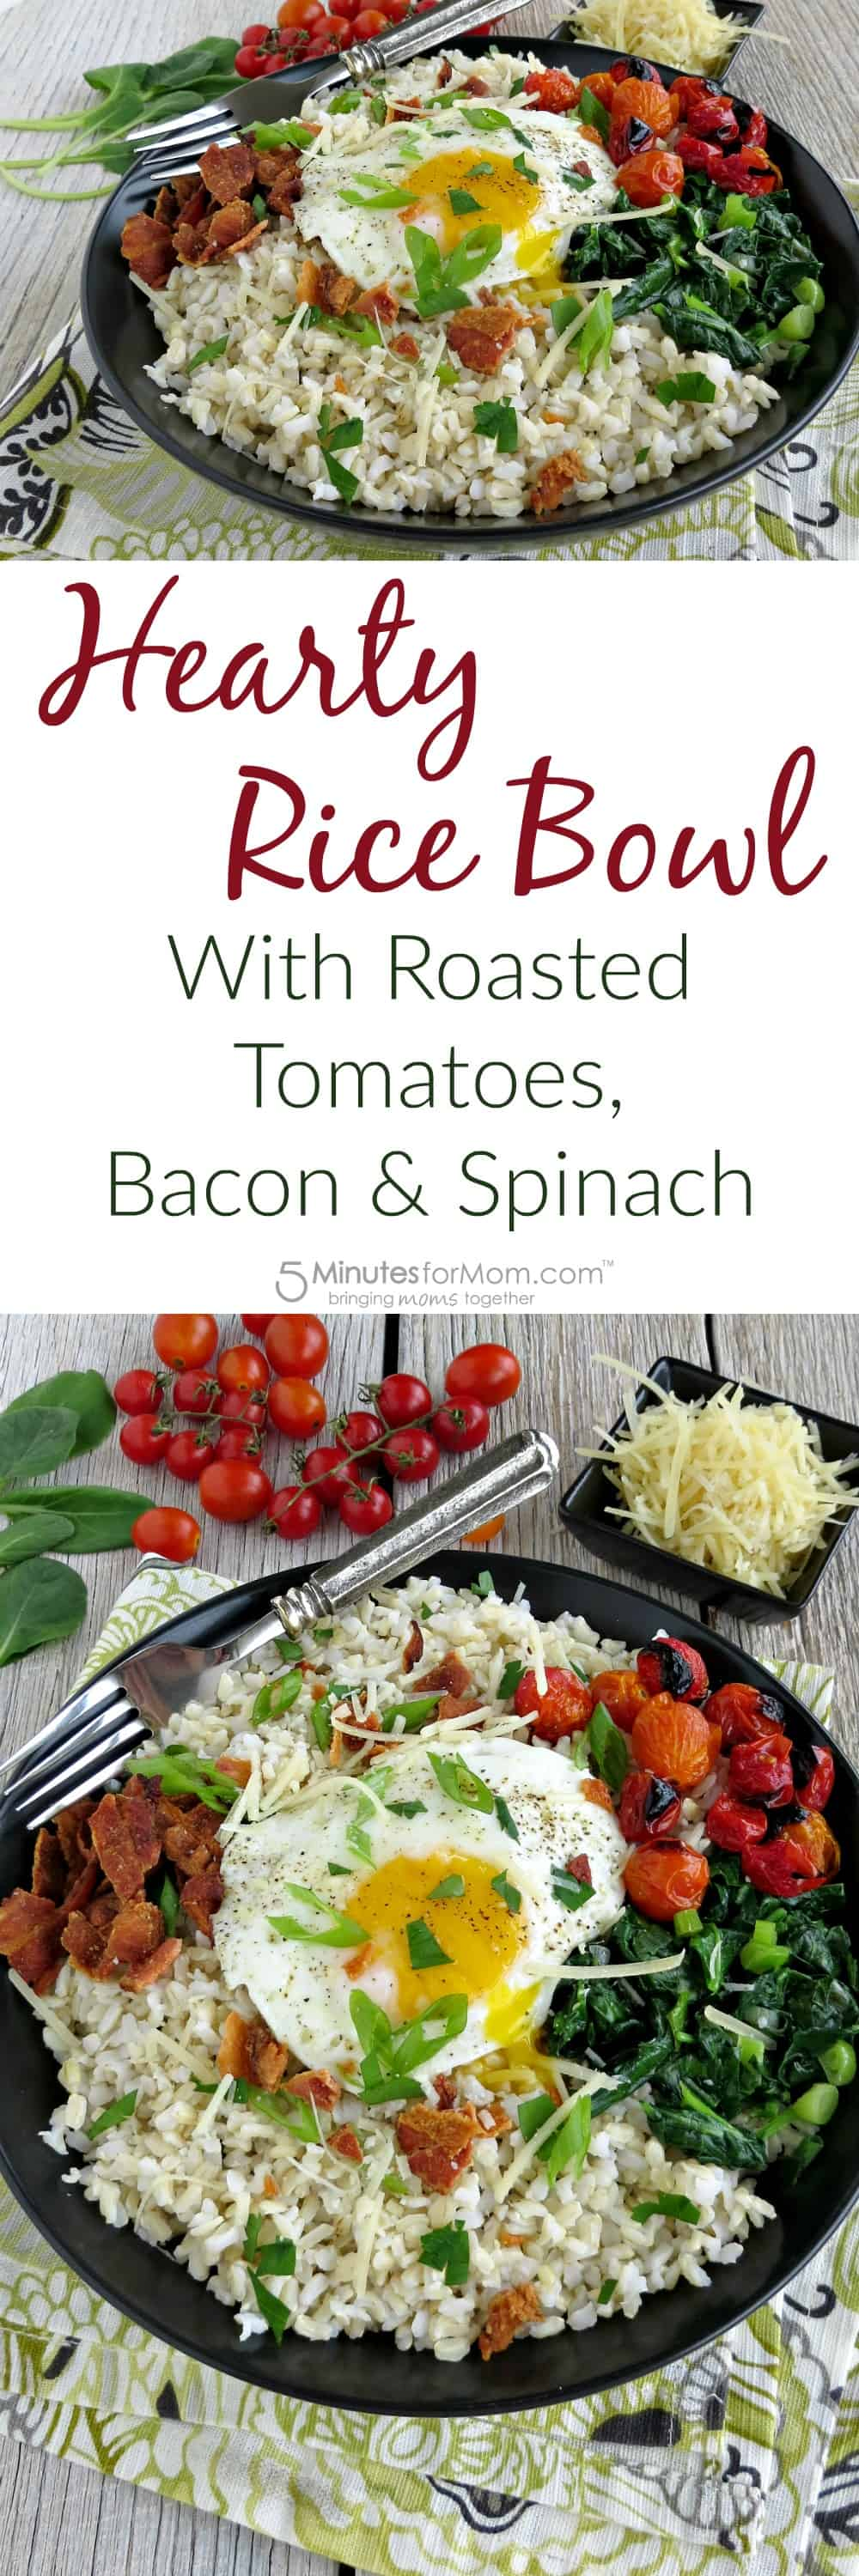 Hearty Rice Bowl with Roasted Tomatoes, Bacon and Spinach Recipe